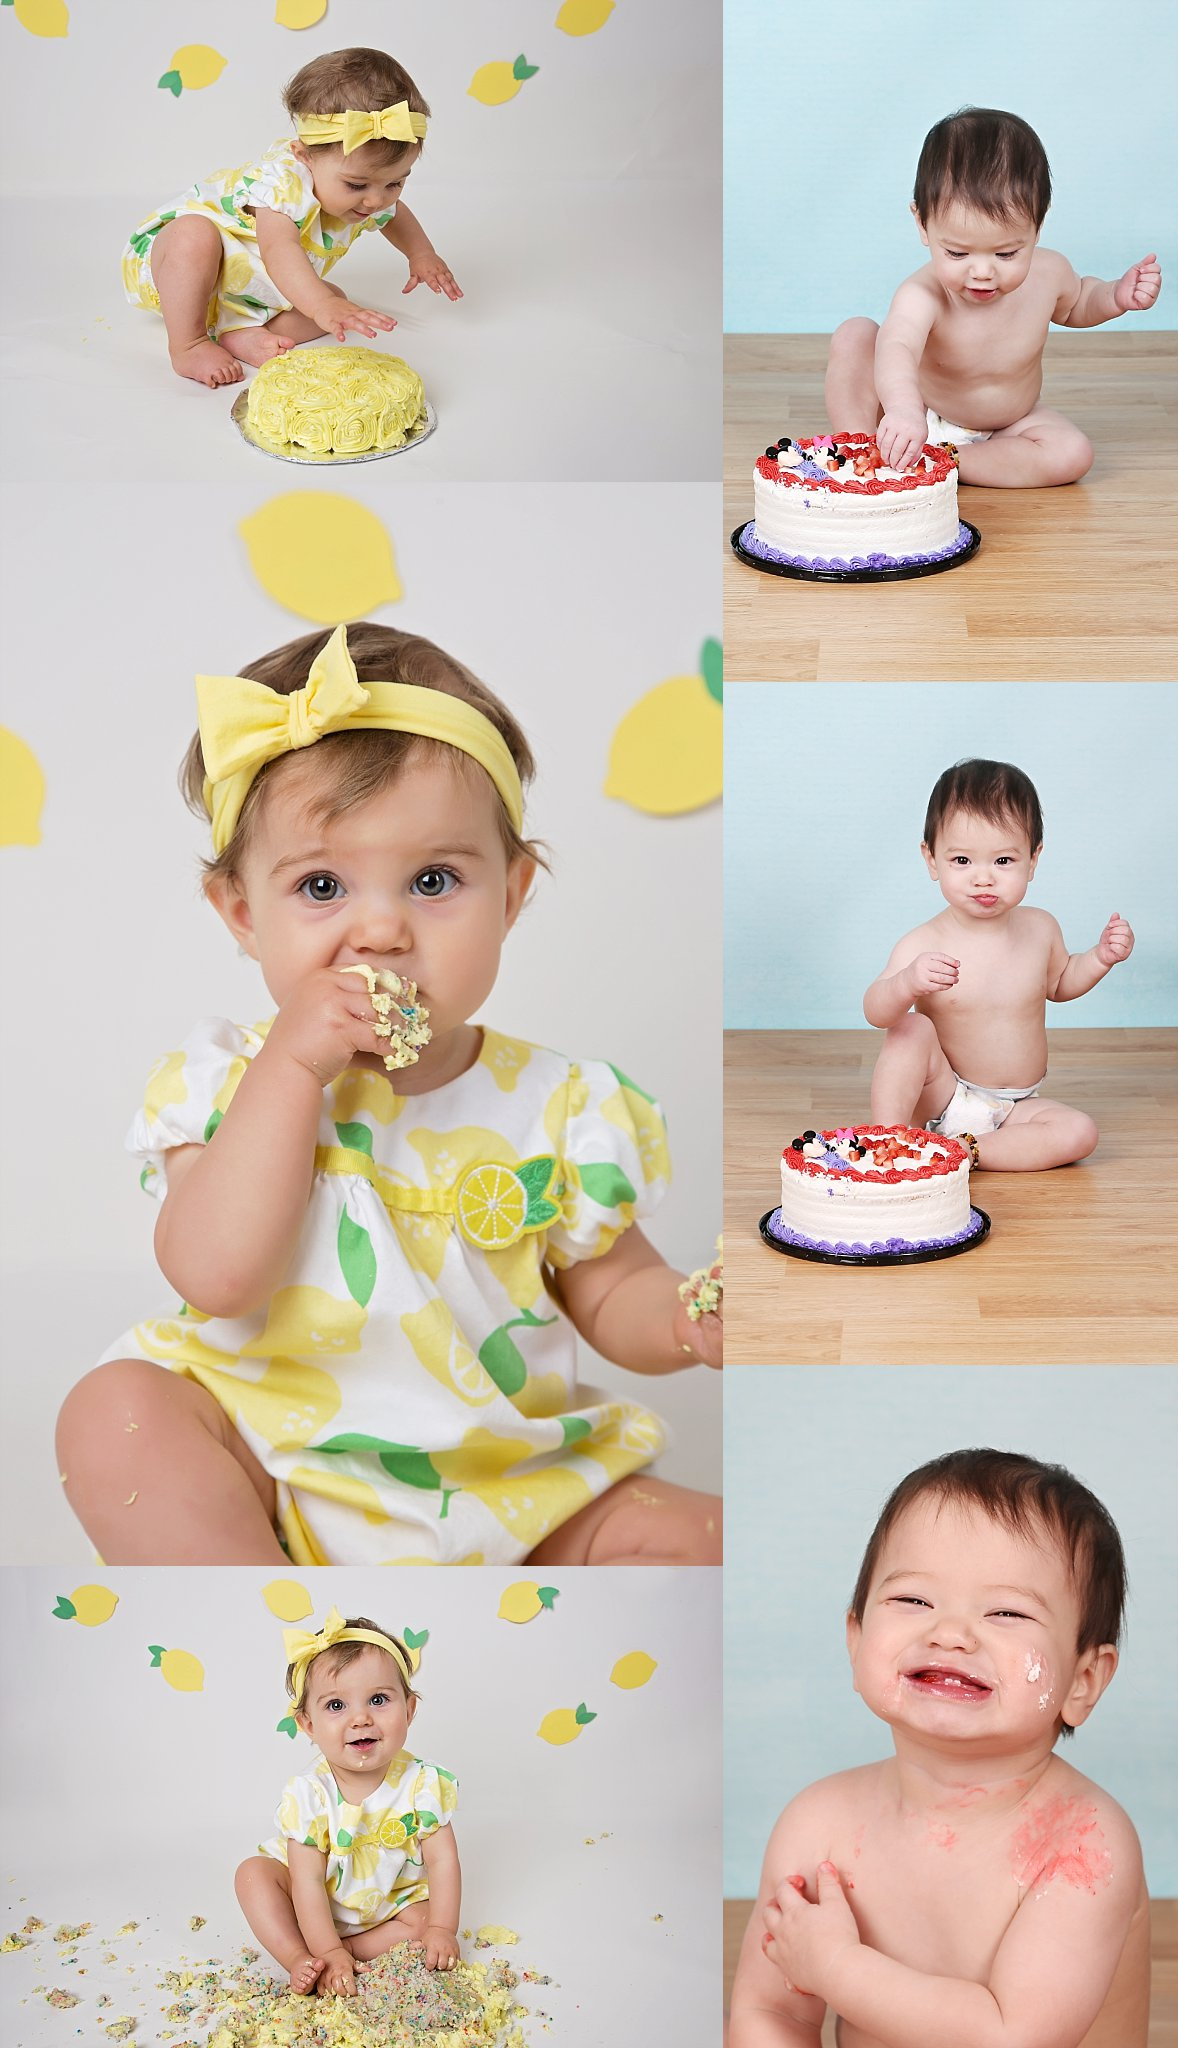 Lemon themed cake smash pictures and baby boy blue cake smash photography in Calgary Alberta by photographer at Windrush Images